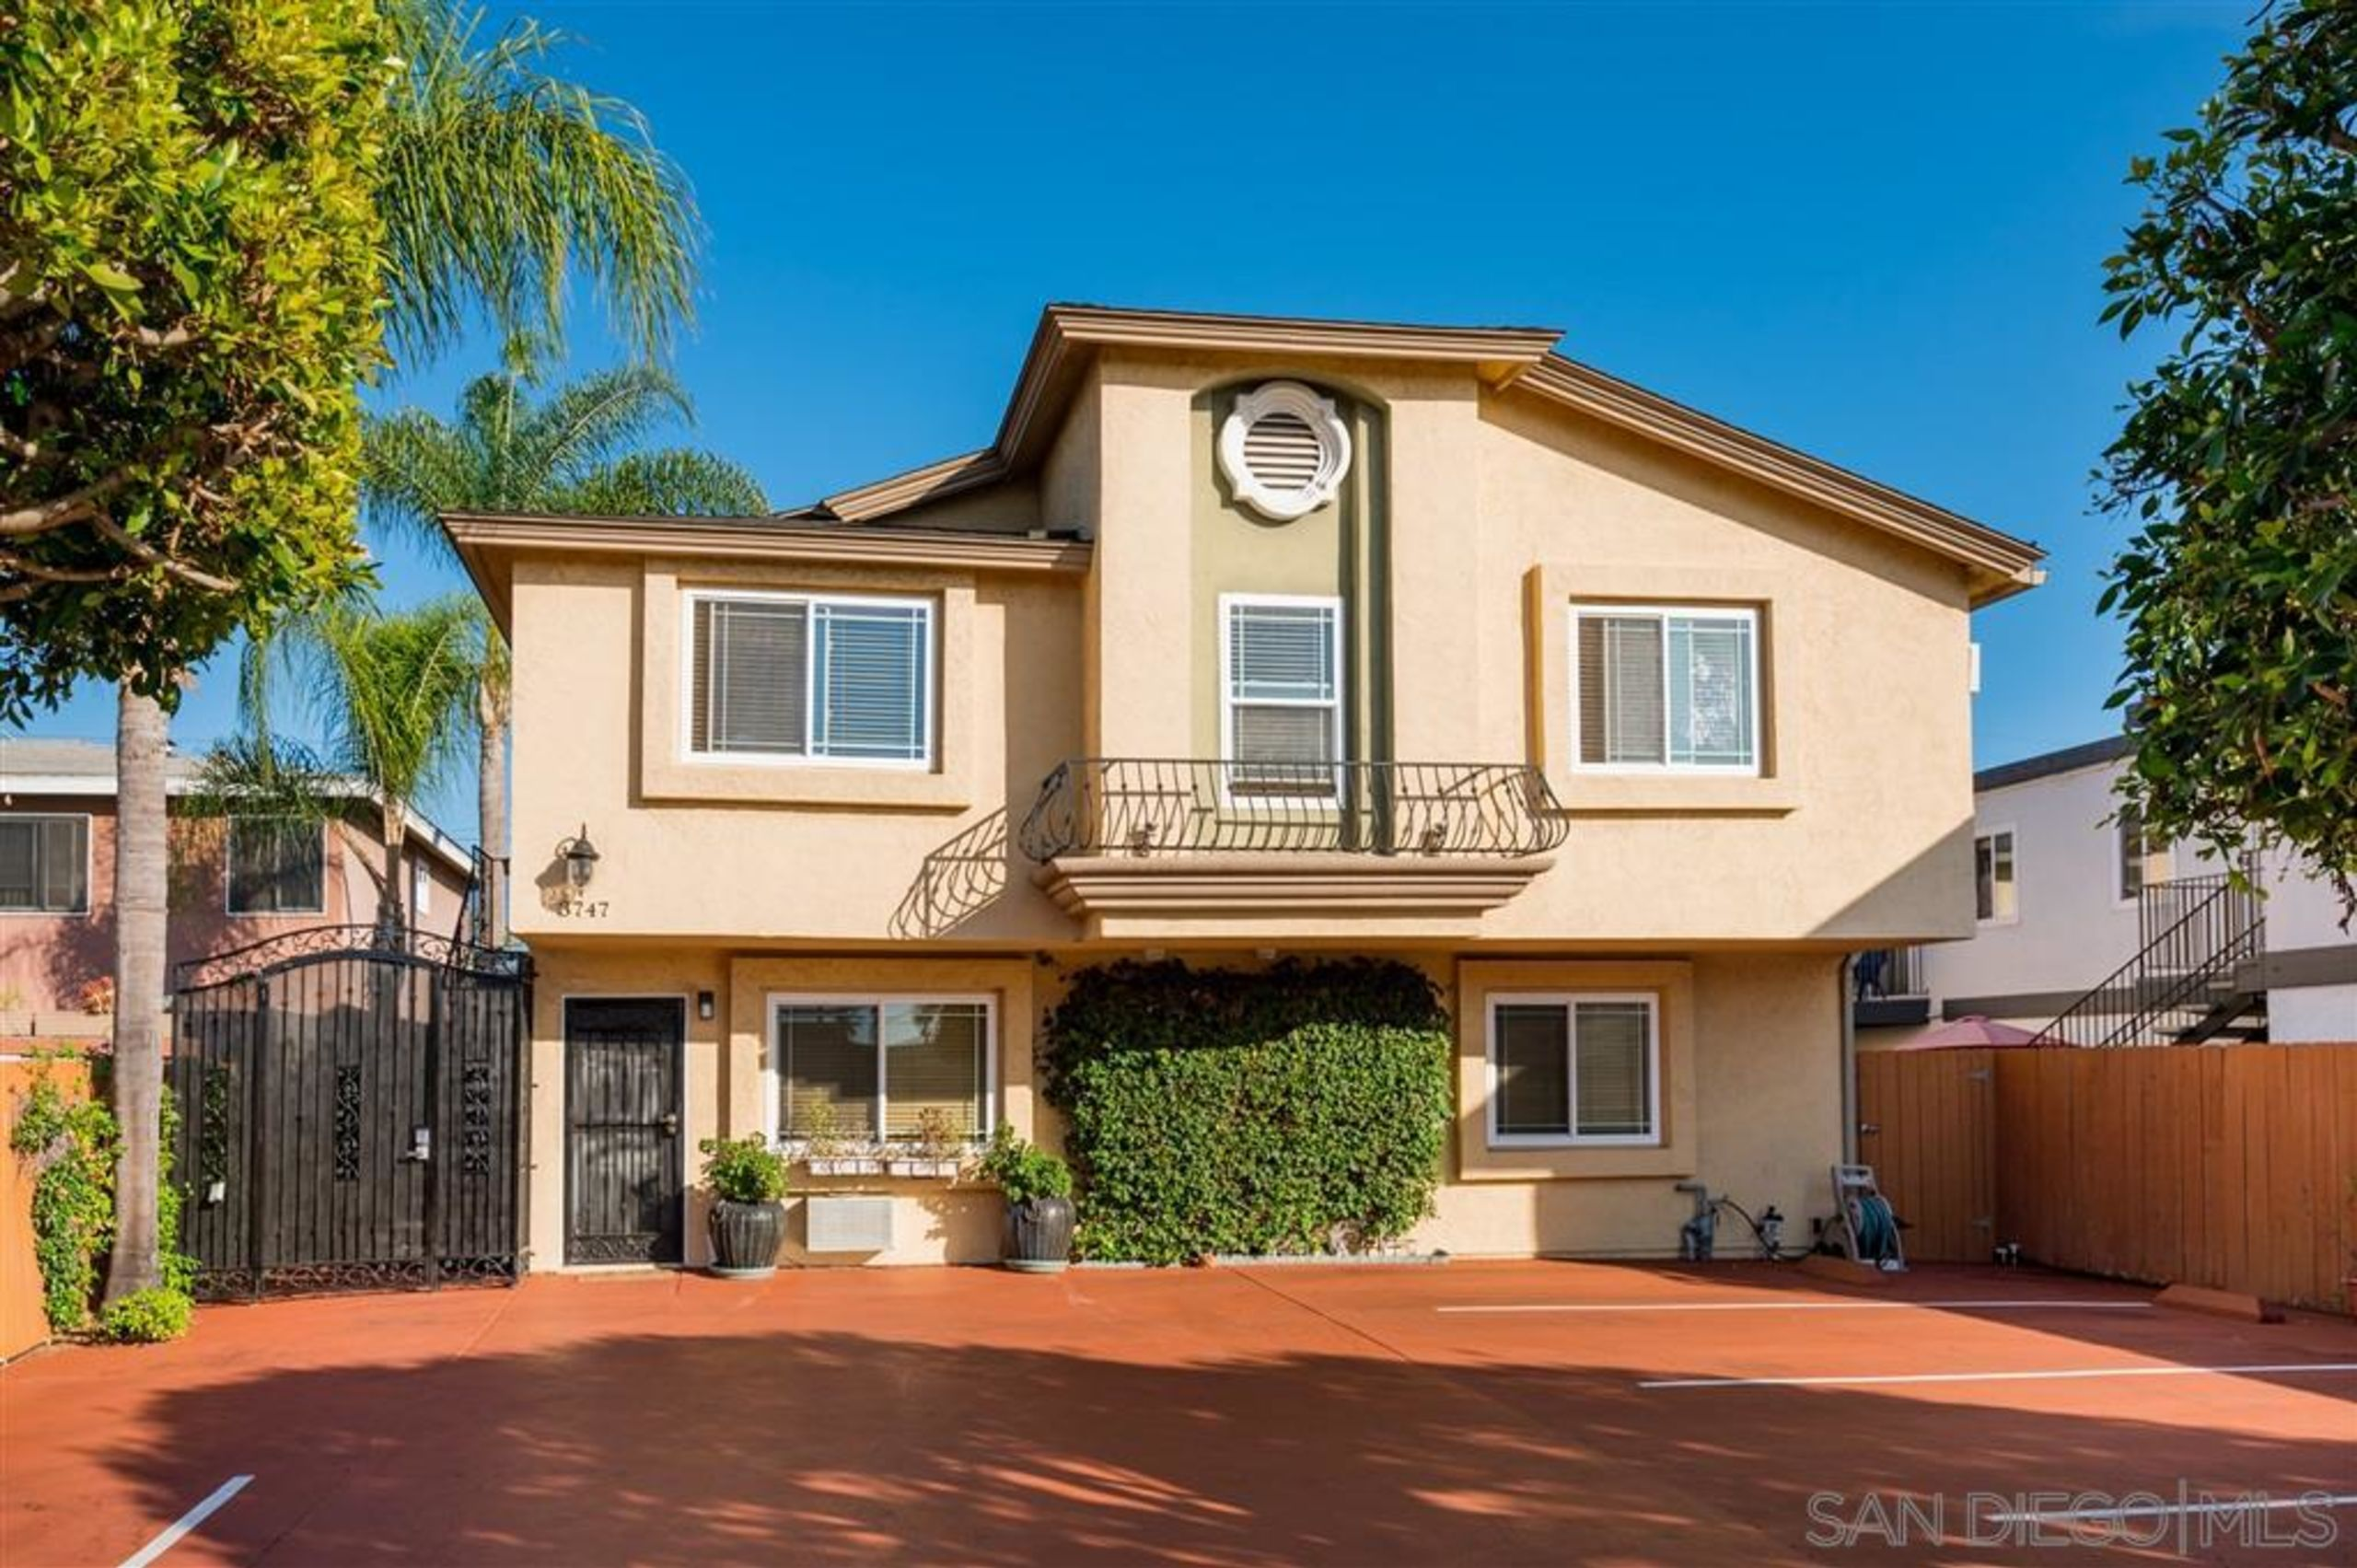 JUST SOLD! 3747 32nd Street Apt 2, San Diego CA 92104